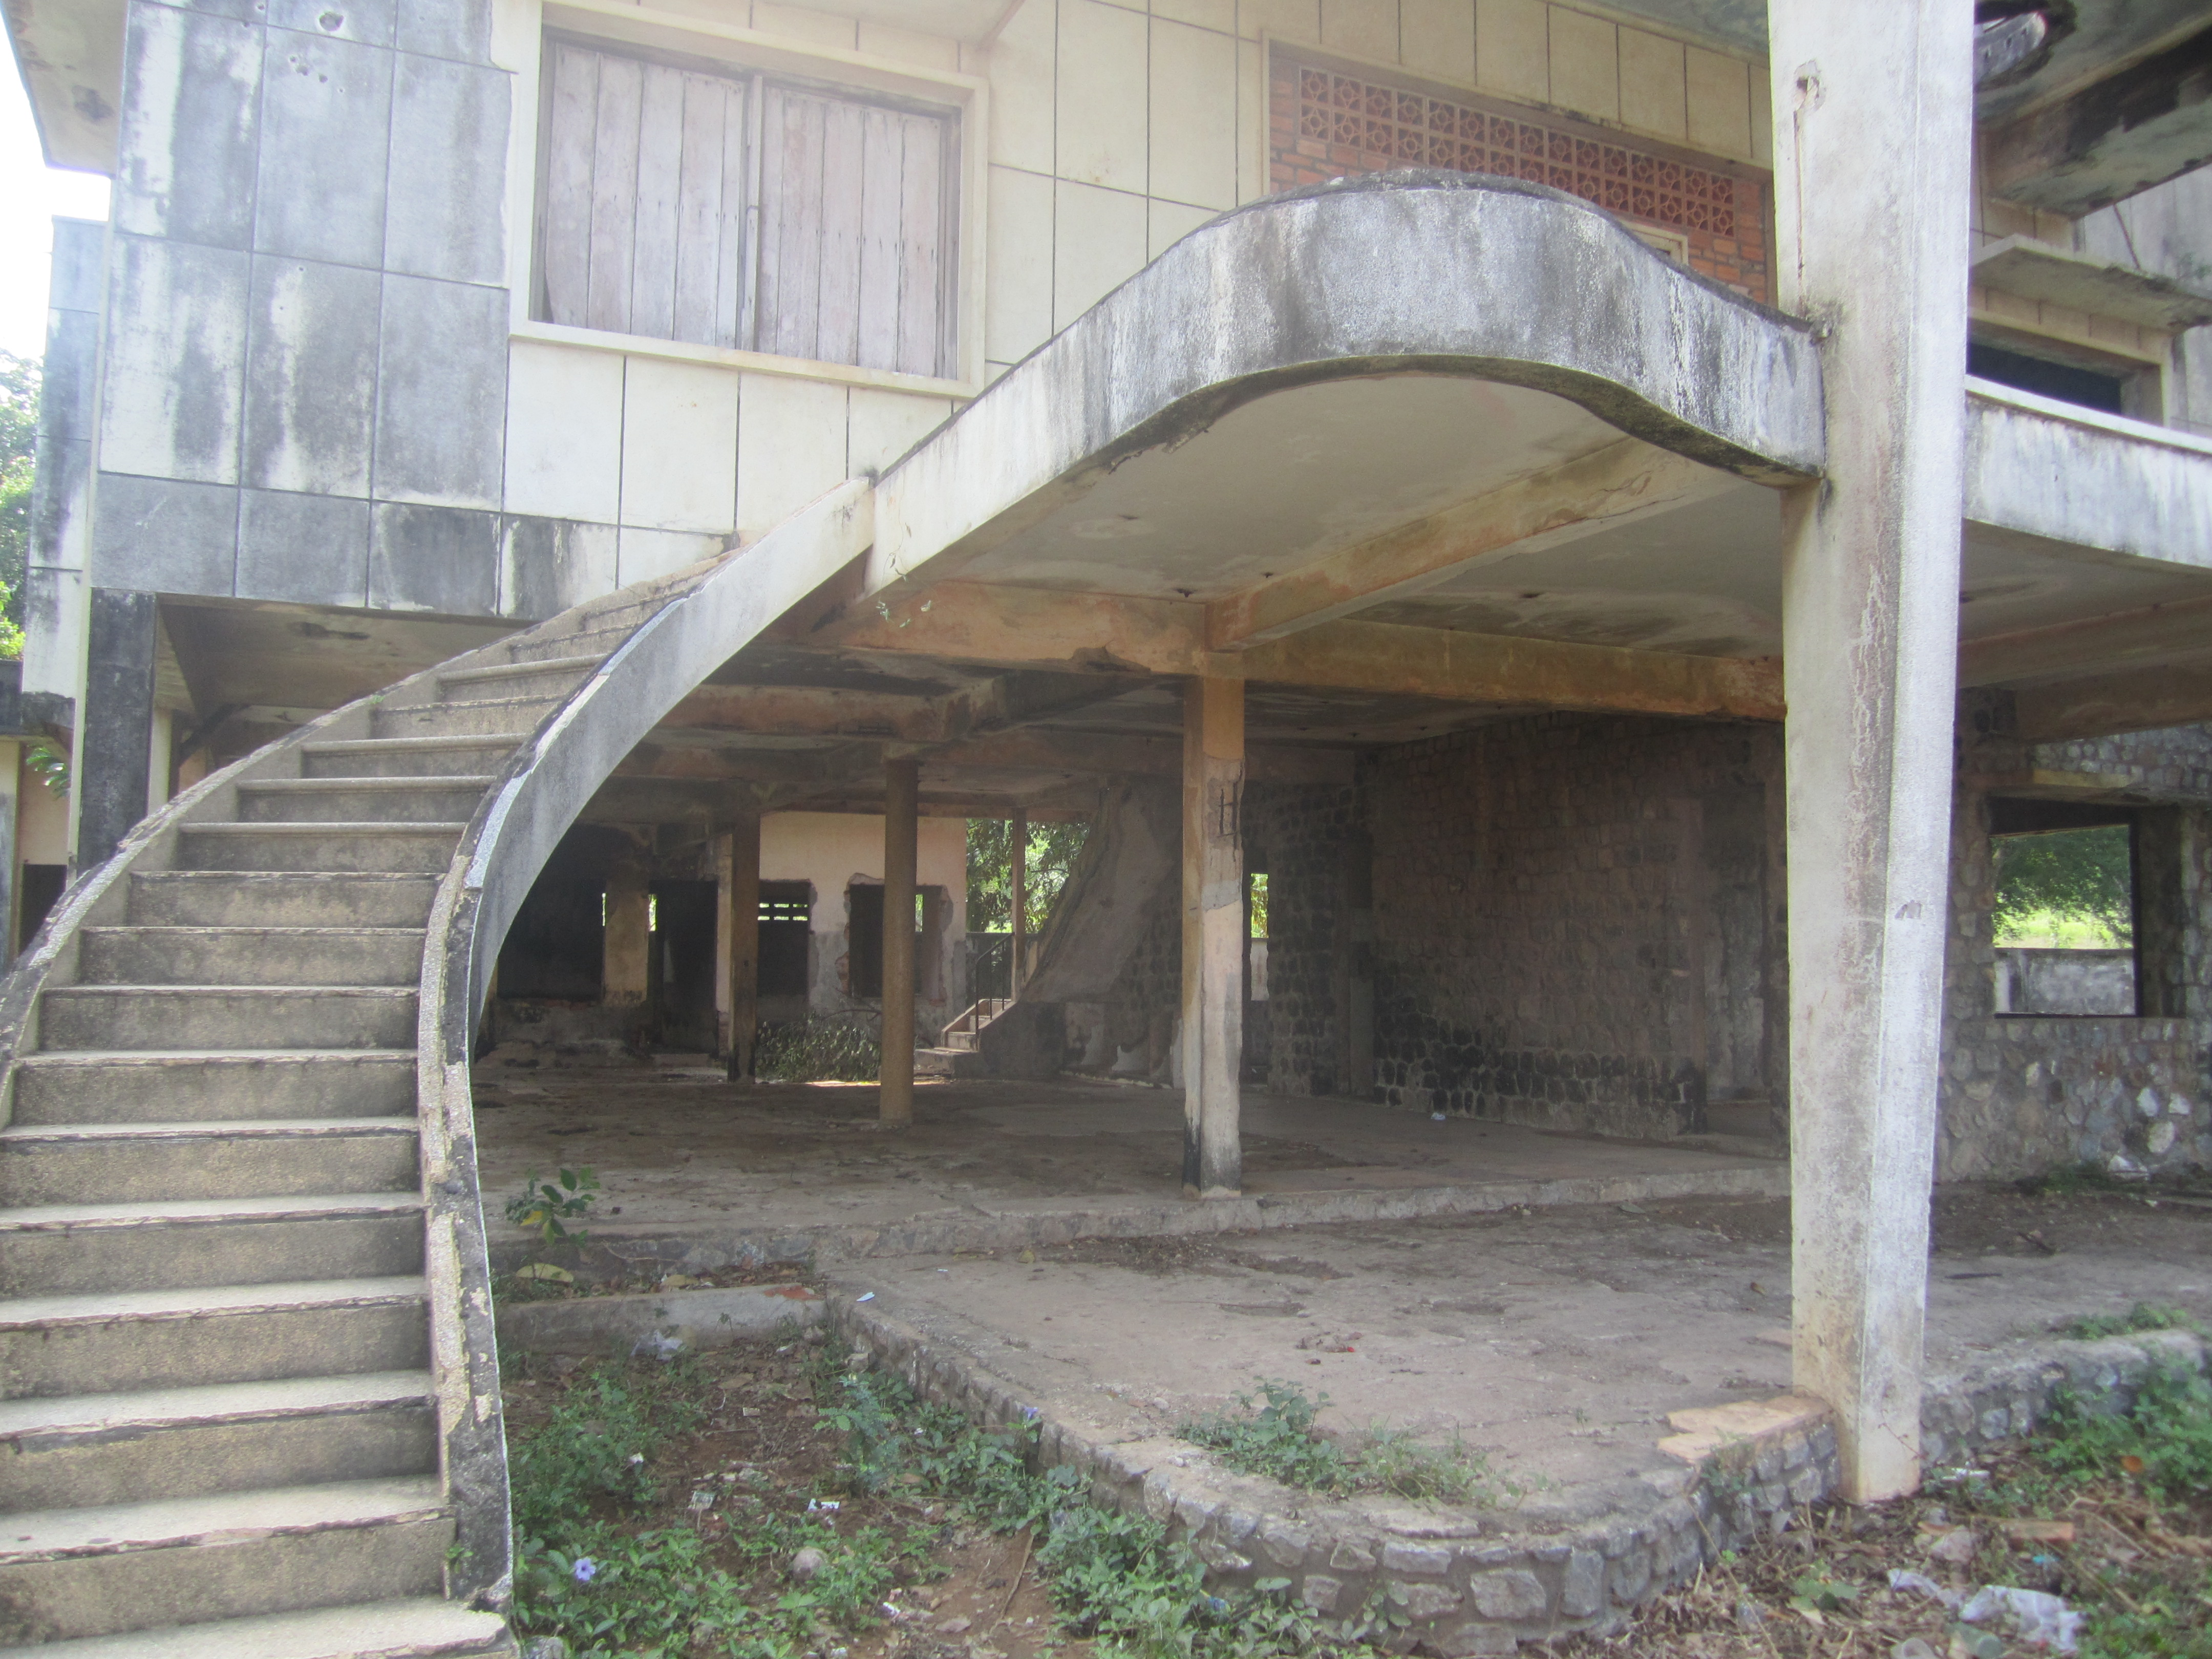 Photo Essay: Kep's Abandoned Mansions | Lonely Girl Travels